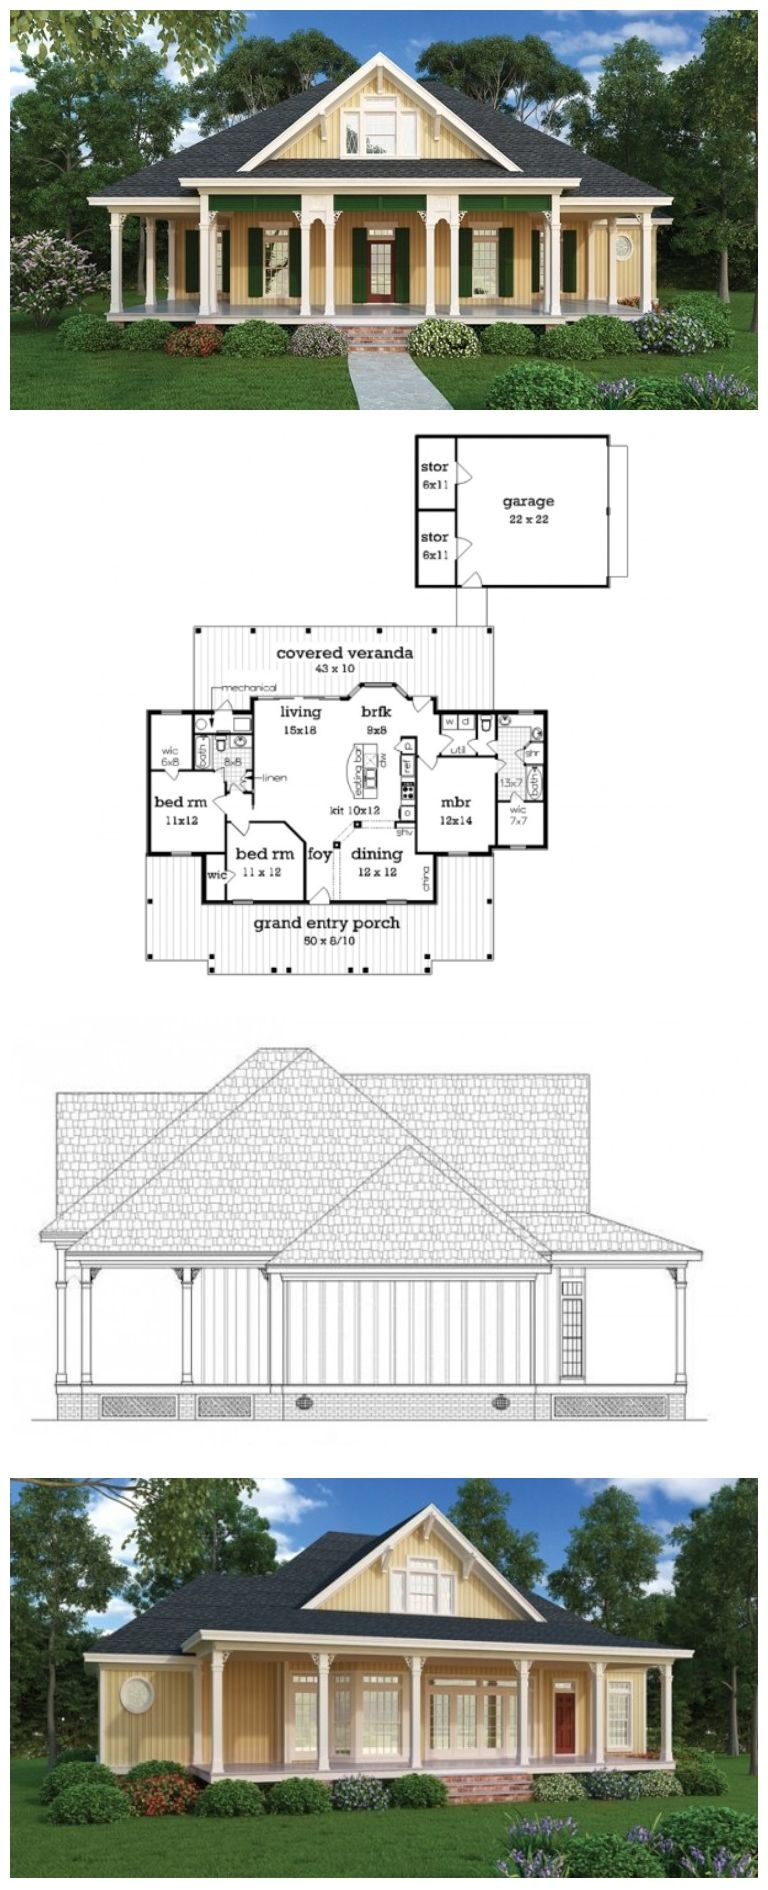 Cottage Style House Plan 3 Beds 2 Baths 1516 Sq Ft Plan 45 378 Cottage Style House Plans House Plans Country Style House Plans